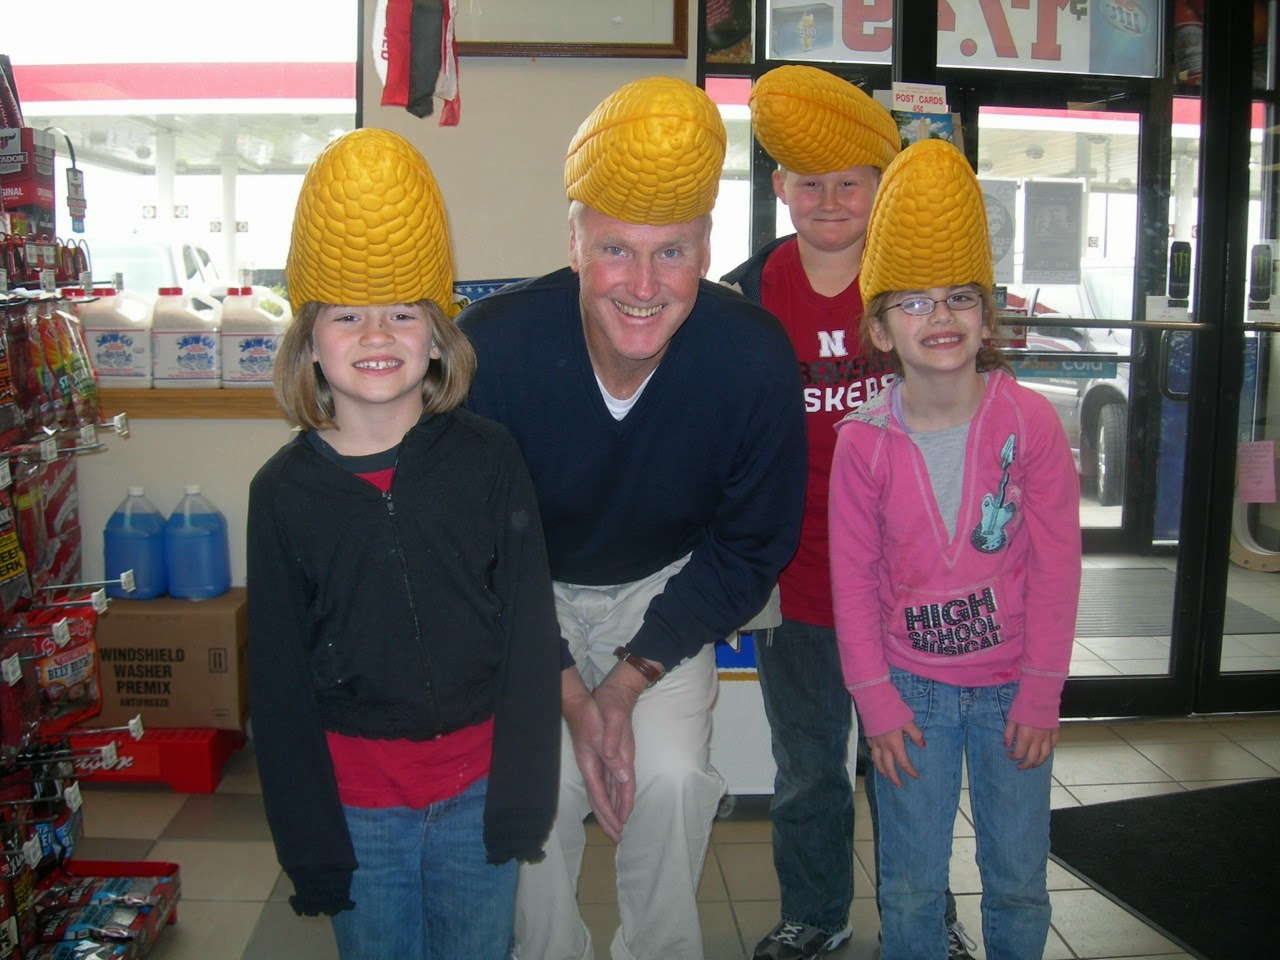 3720456d1a0 Corn Cob Head Hats on sale at BP station near Cornhusker Stadium. La  Nancita snapped a trying-it-on foto of Old Poppy and some of his young pals.